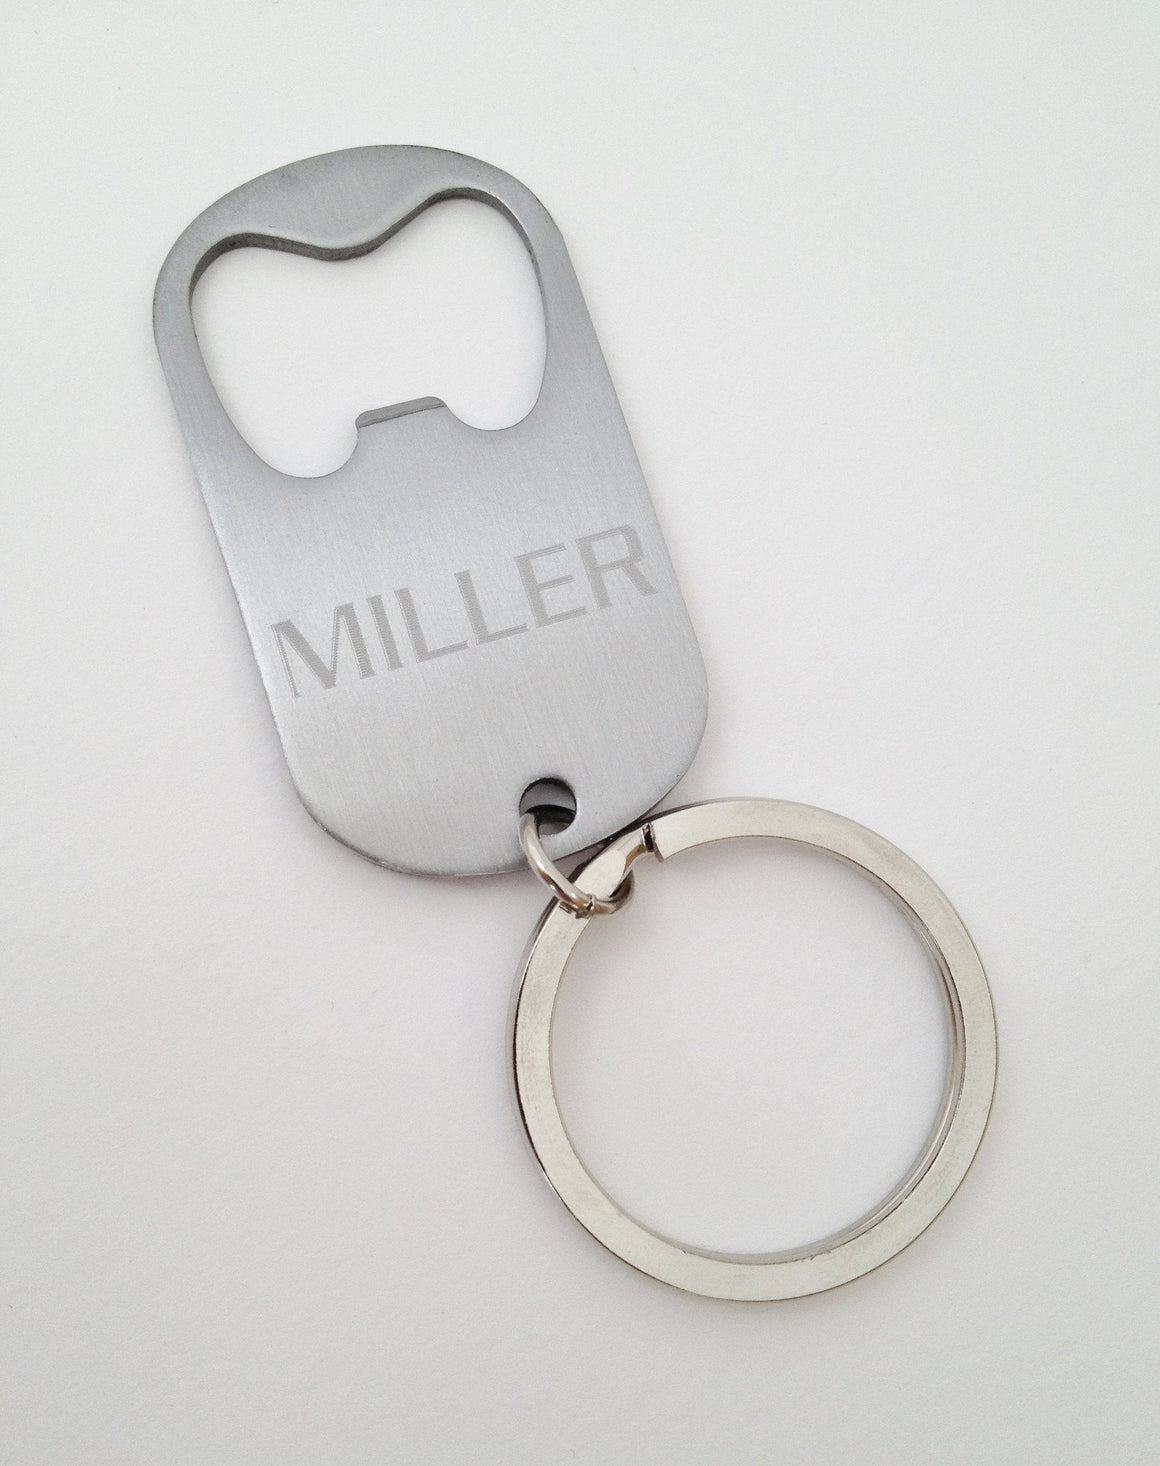 Keychain Bottle Opener Customized